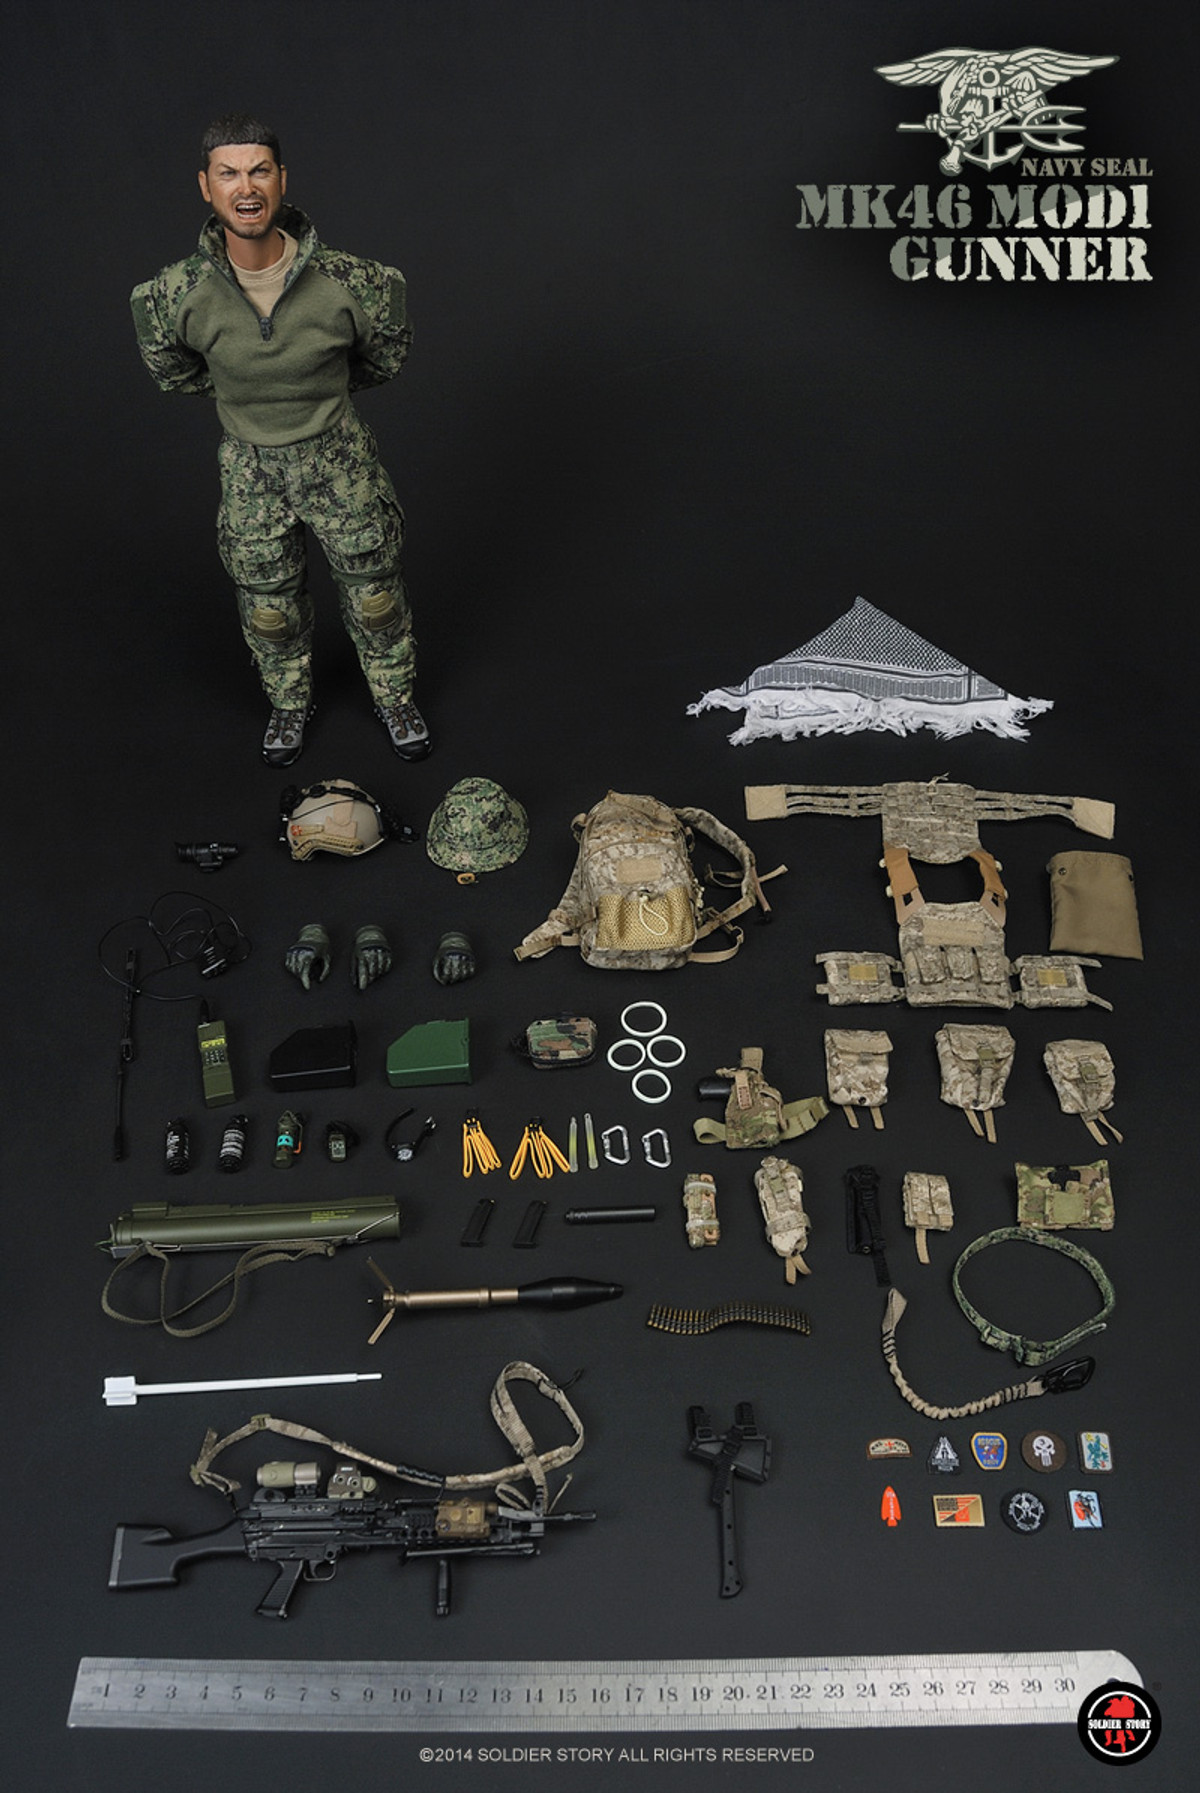 Navy Seal MK46MOD1 Gunner Radio Set 1//6th Scale Figure by Soldier Story